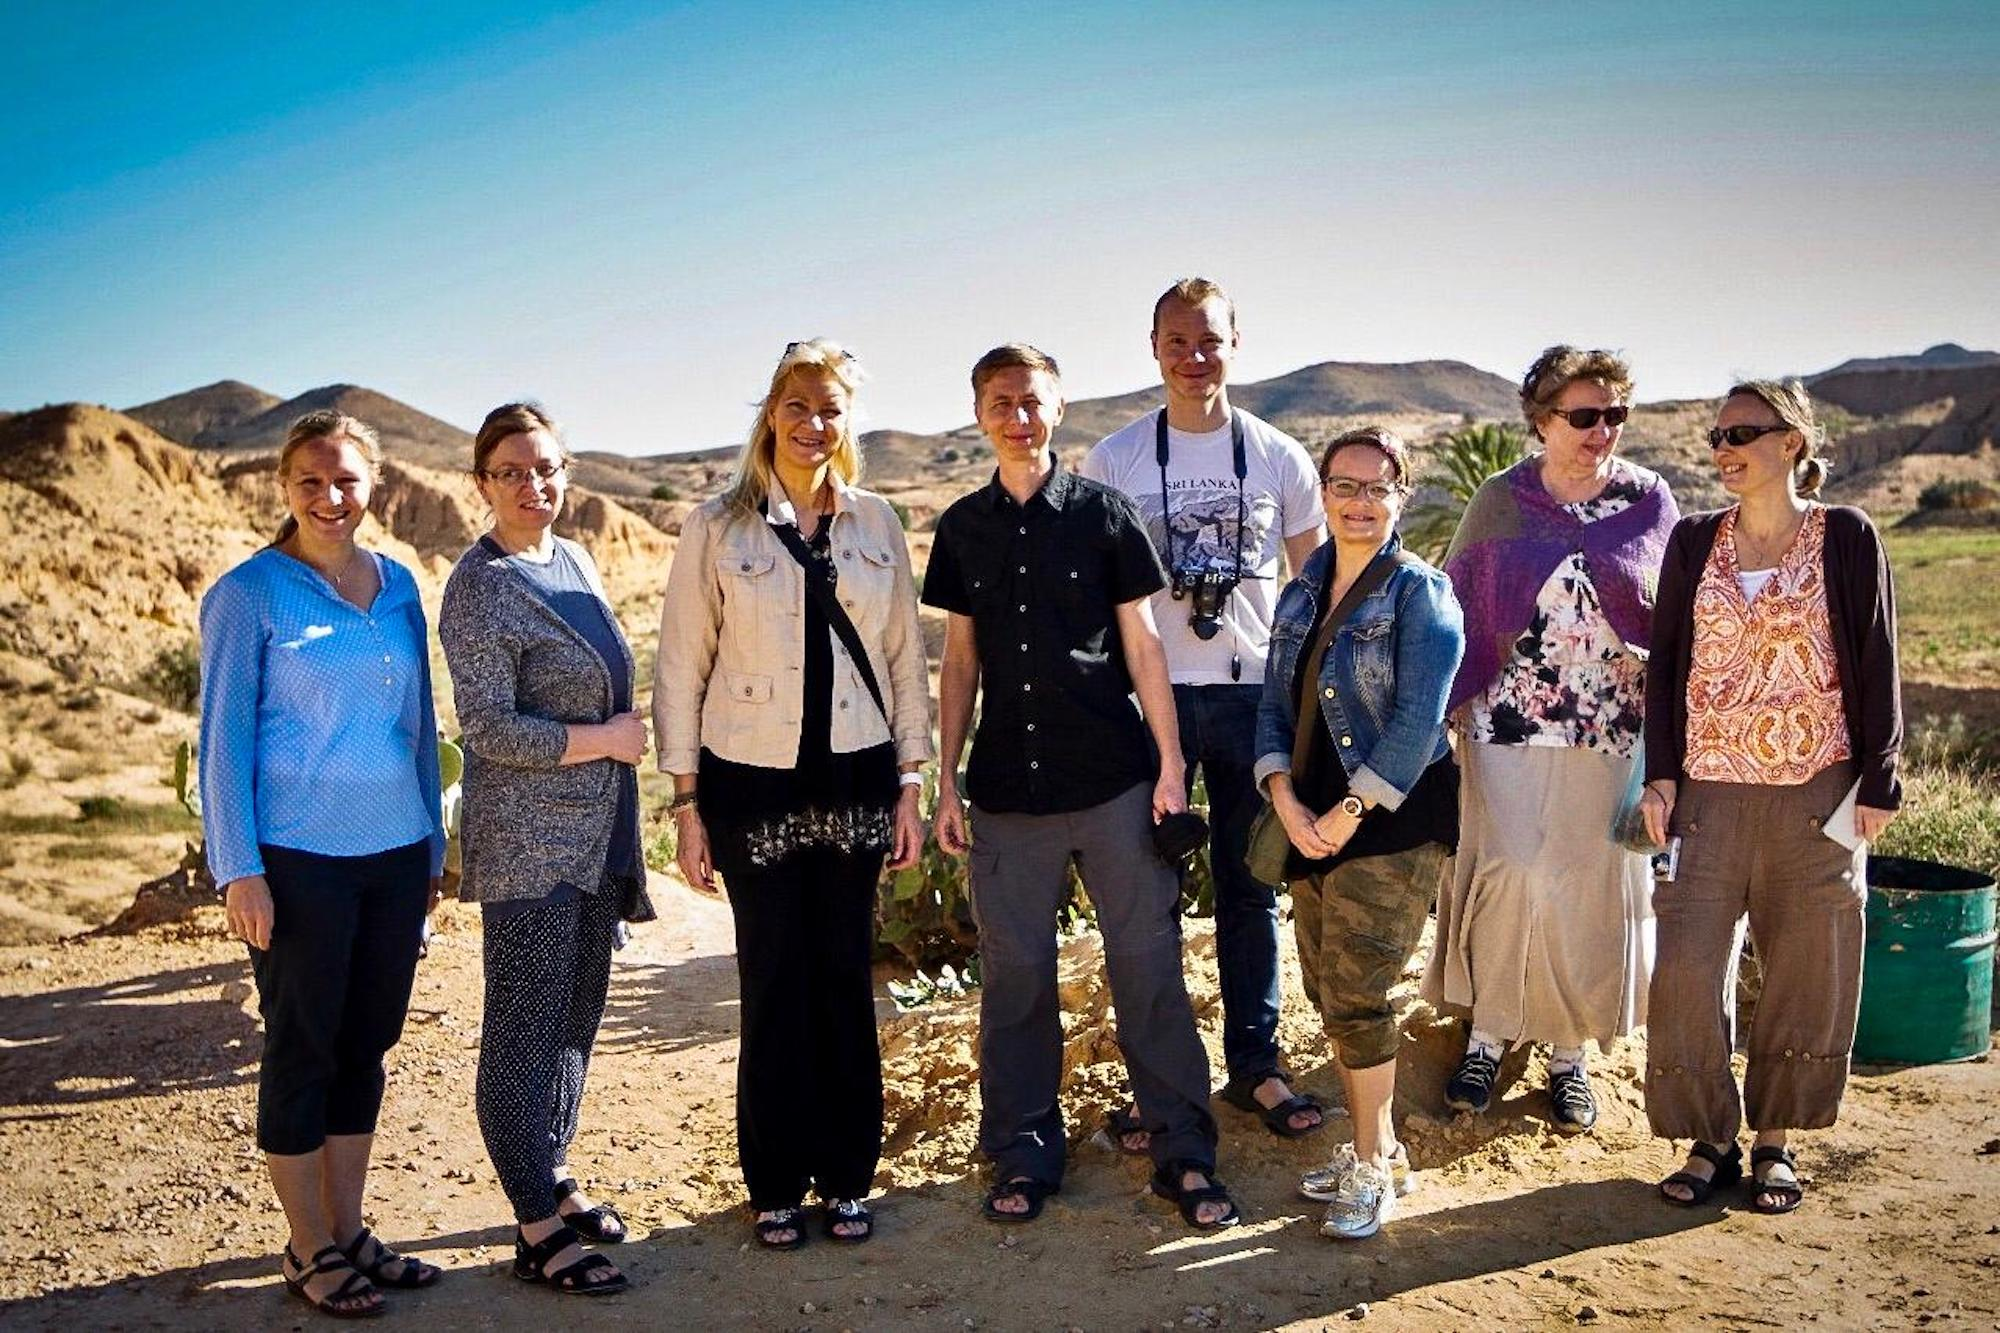 Group of travelers posing in Matmata Tunisia with desert landscape in the background